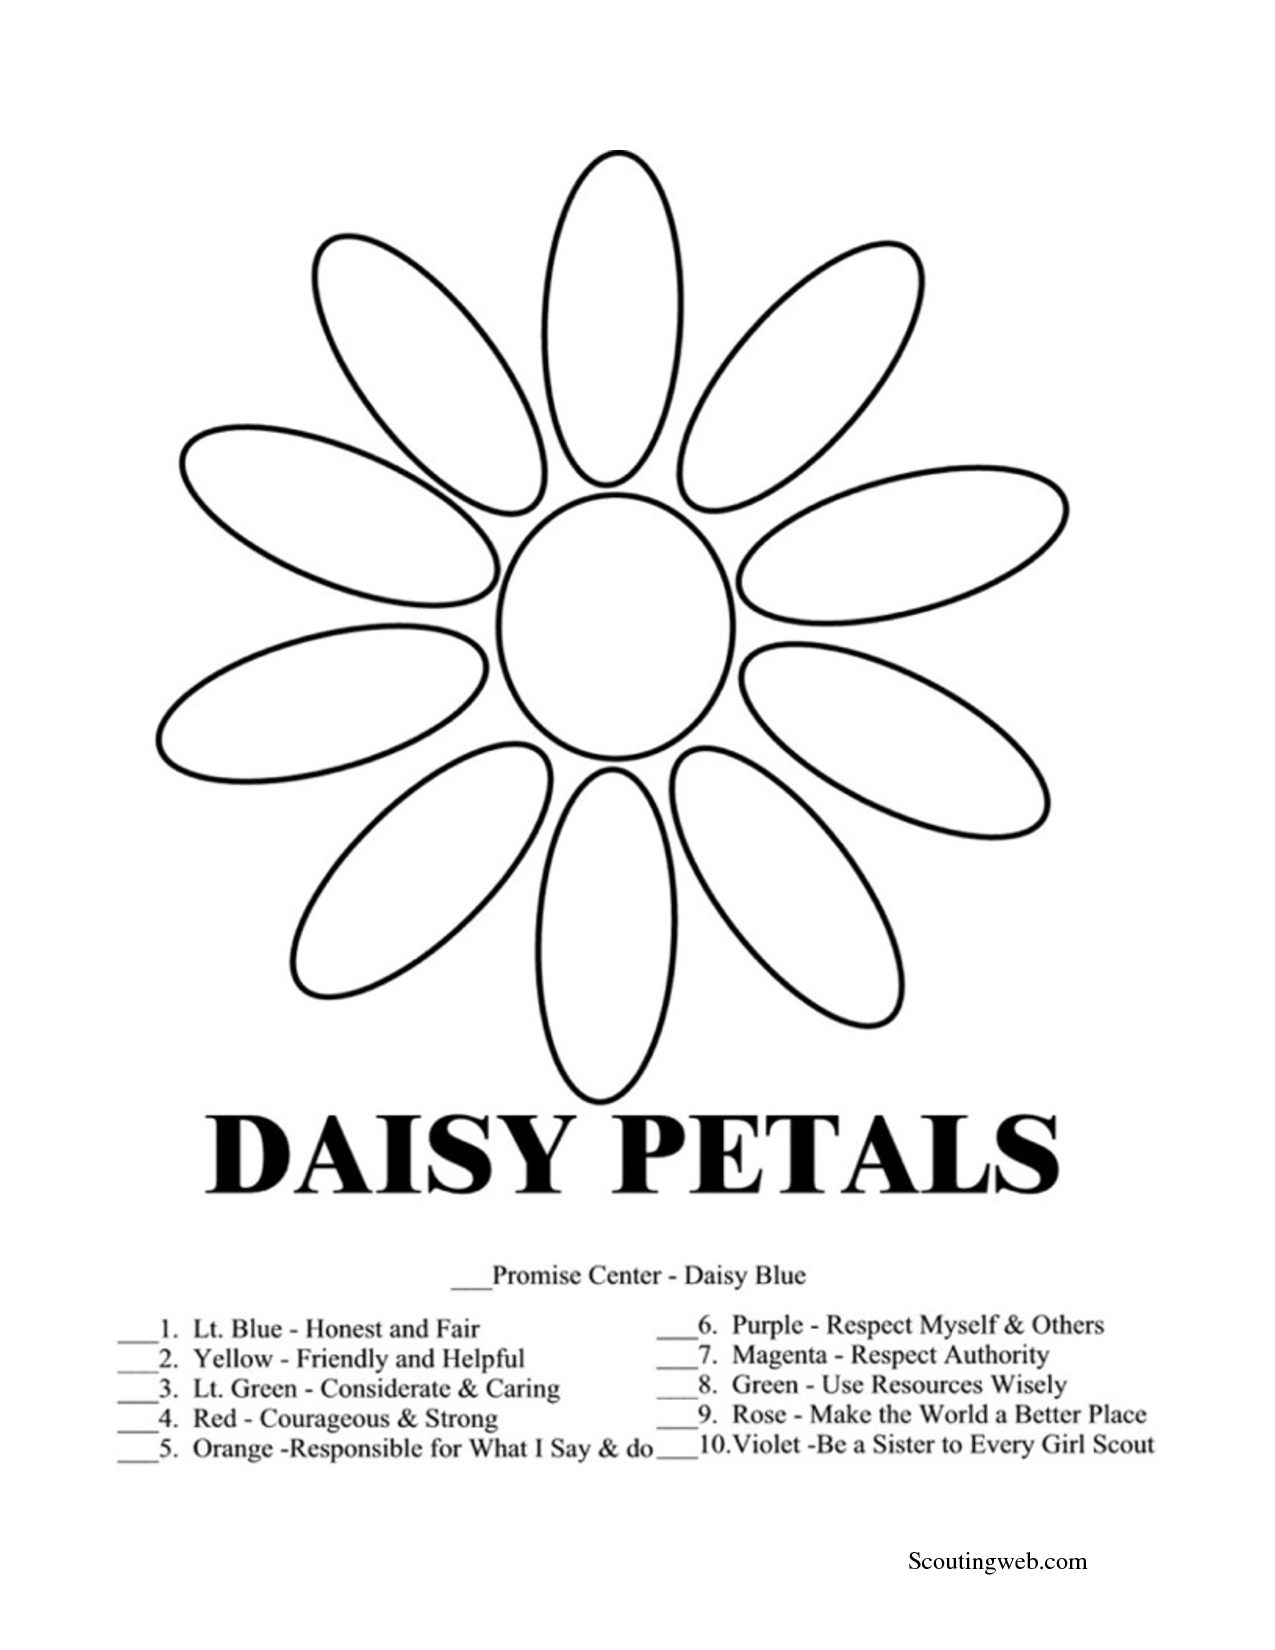 girl scout daisy coloring pages Daisy Petal Coloring Page | Daisy | Daisy girl scouts, Girl scouts  girl scout daisy coloring pages